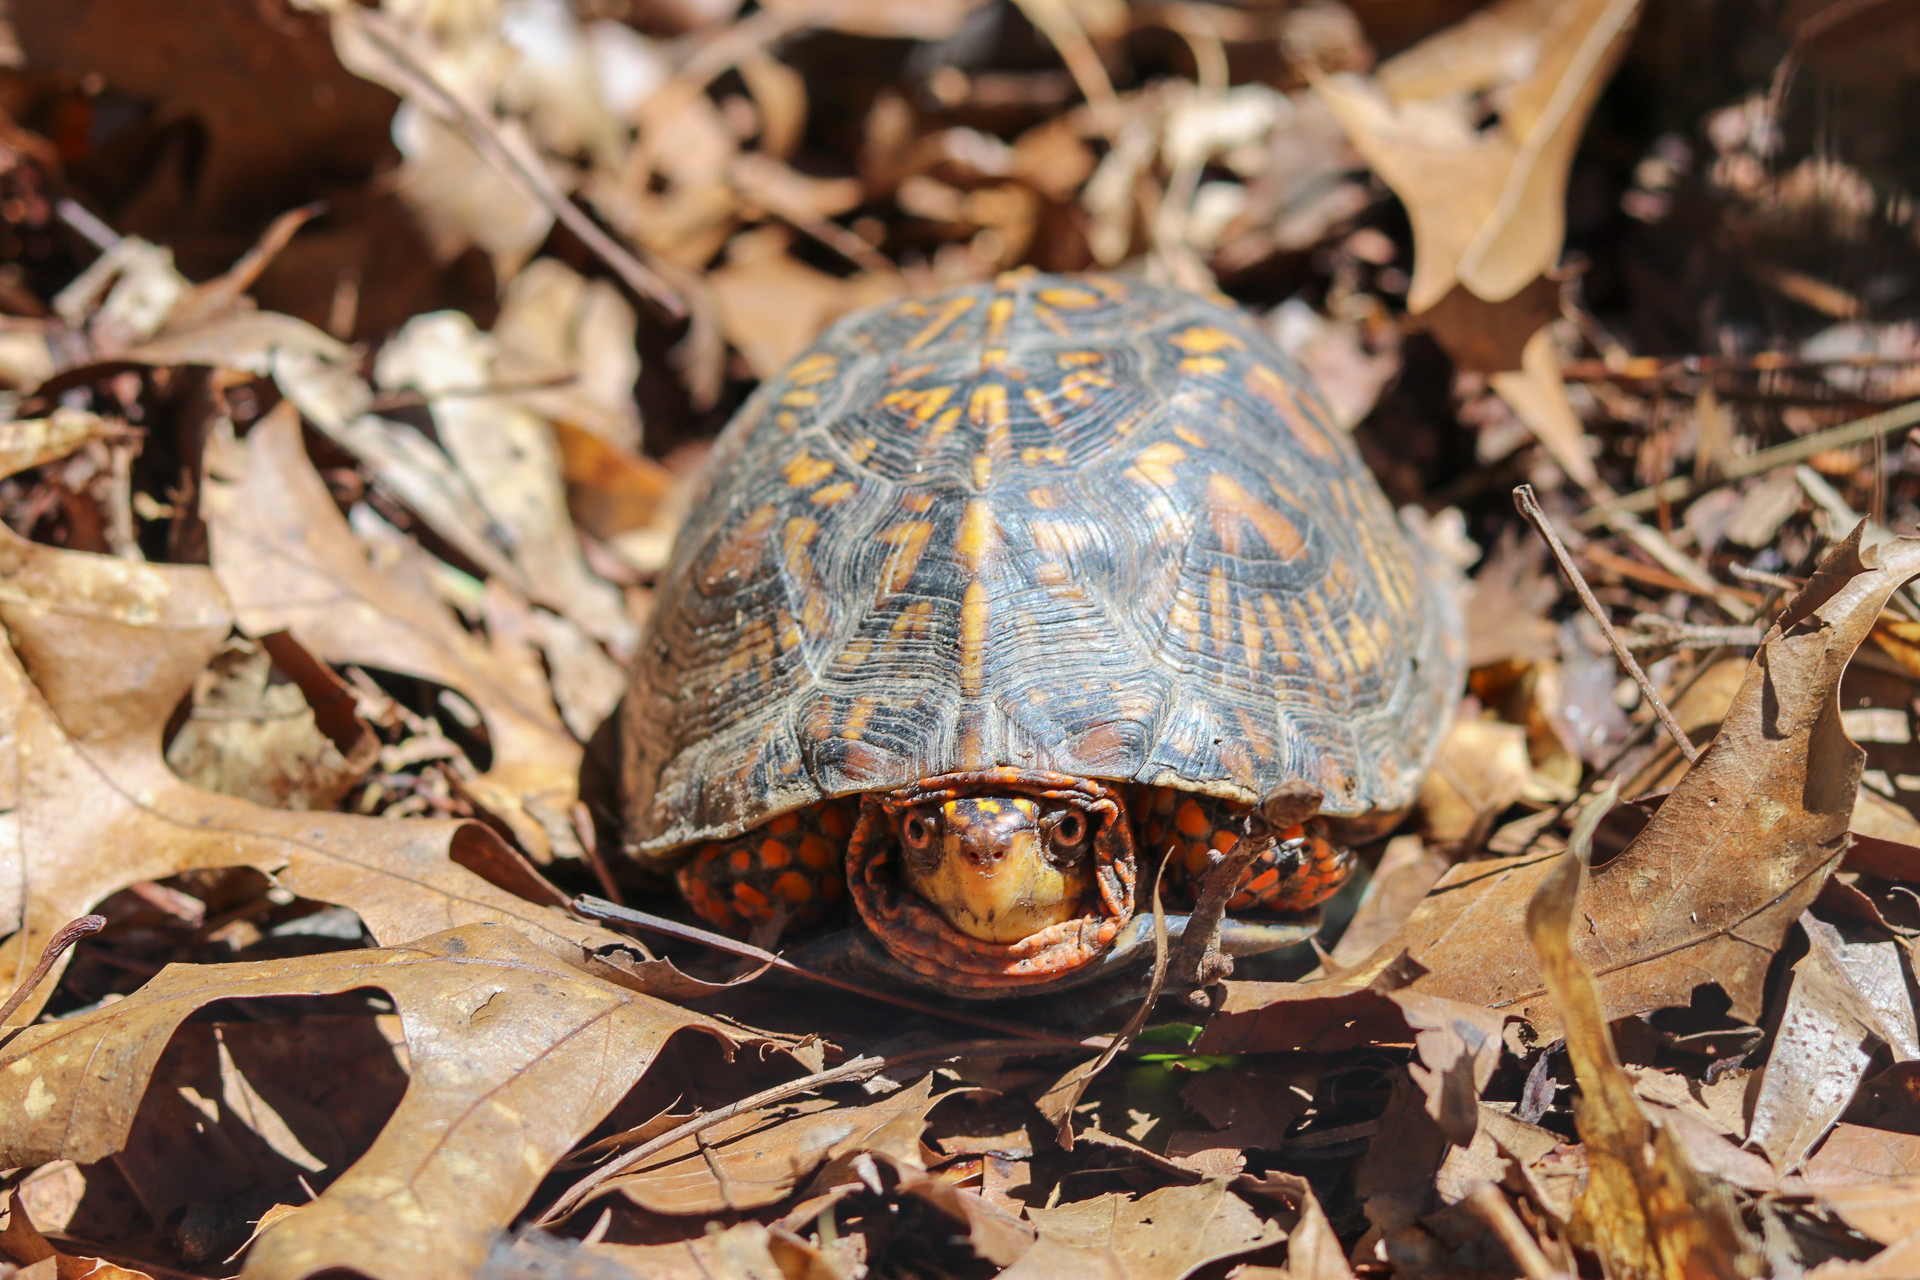 An Eastern Box Turtle from the turtle sanctuary located outside of the Blue Heron building.